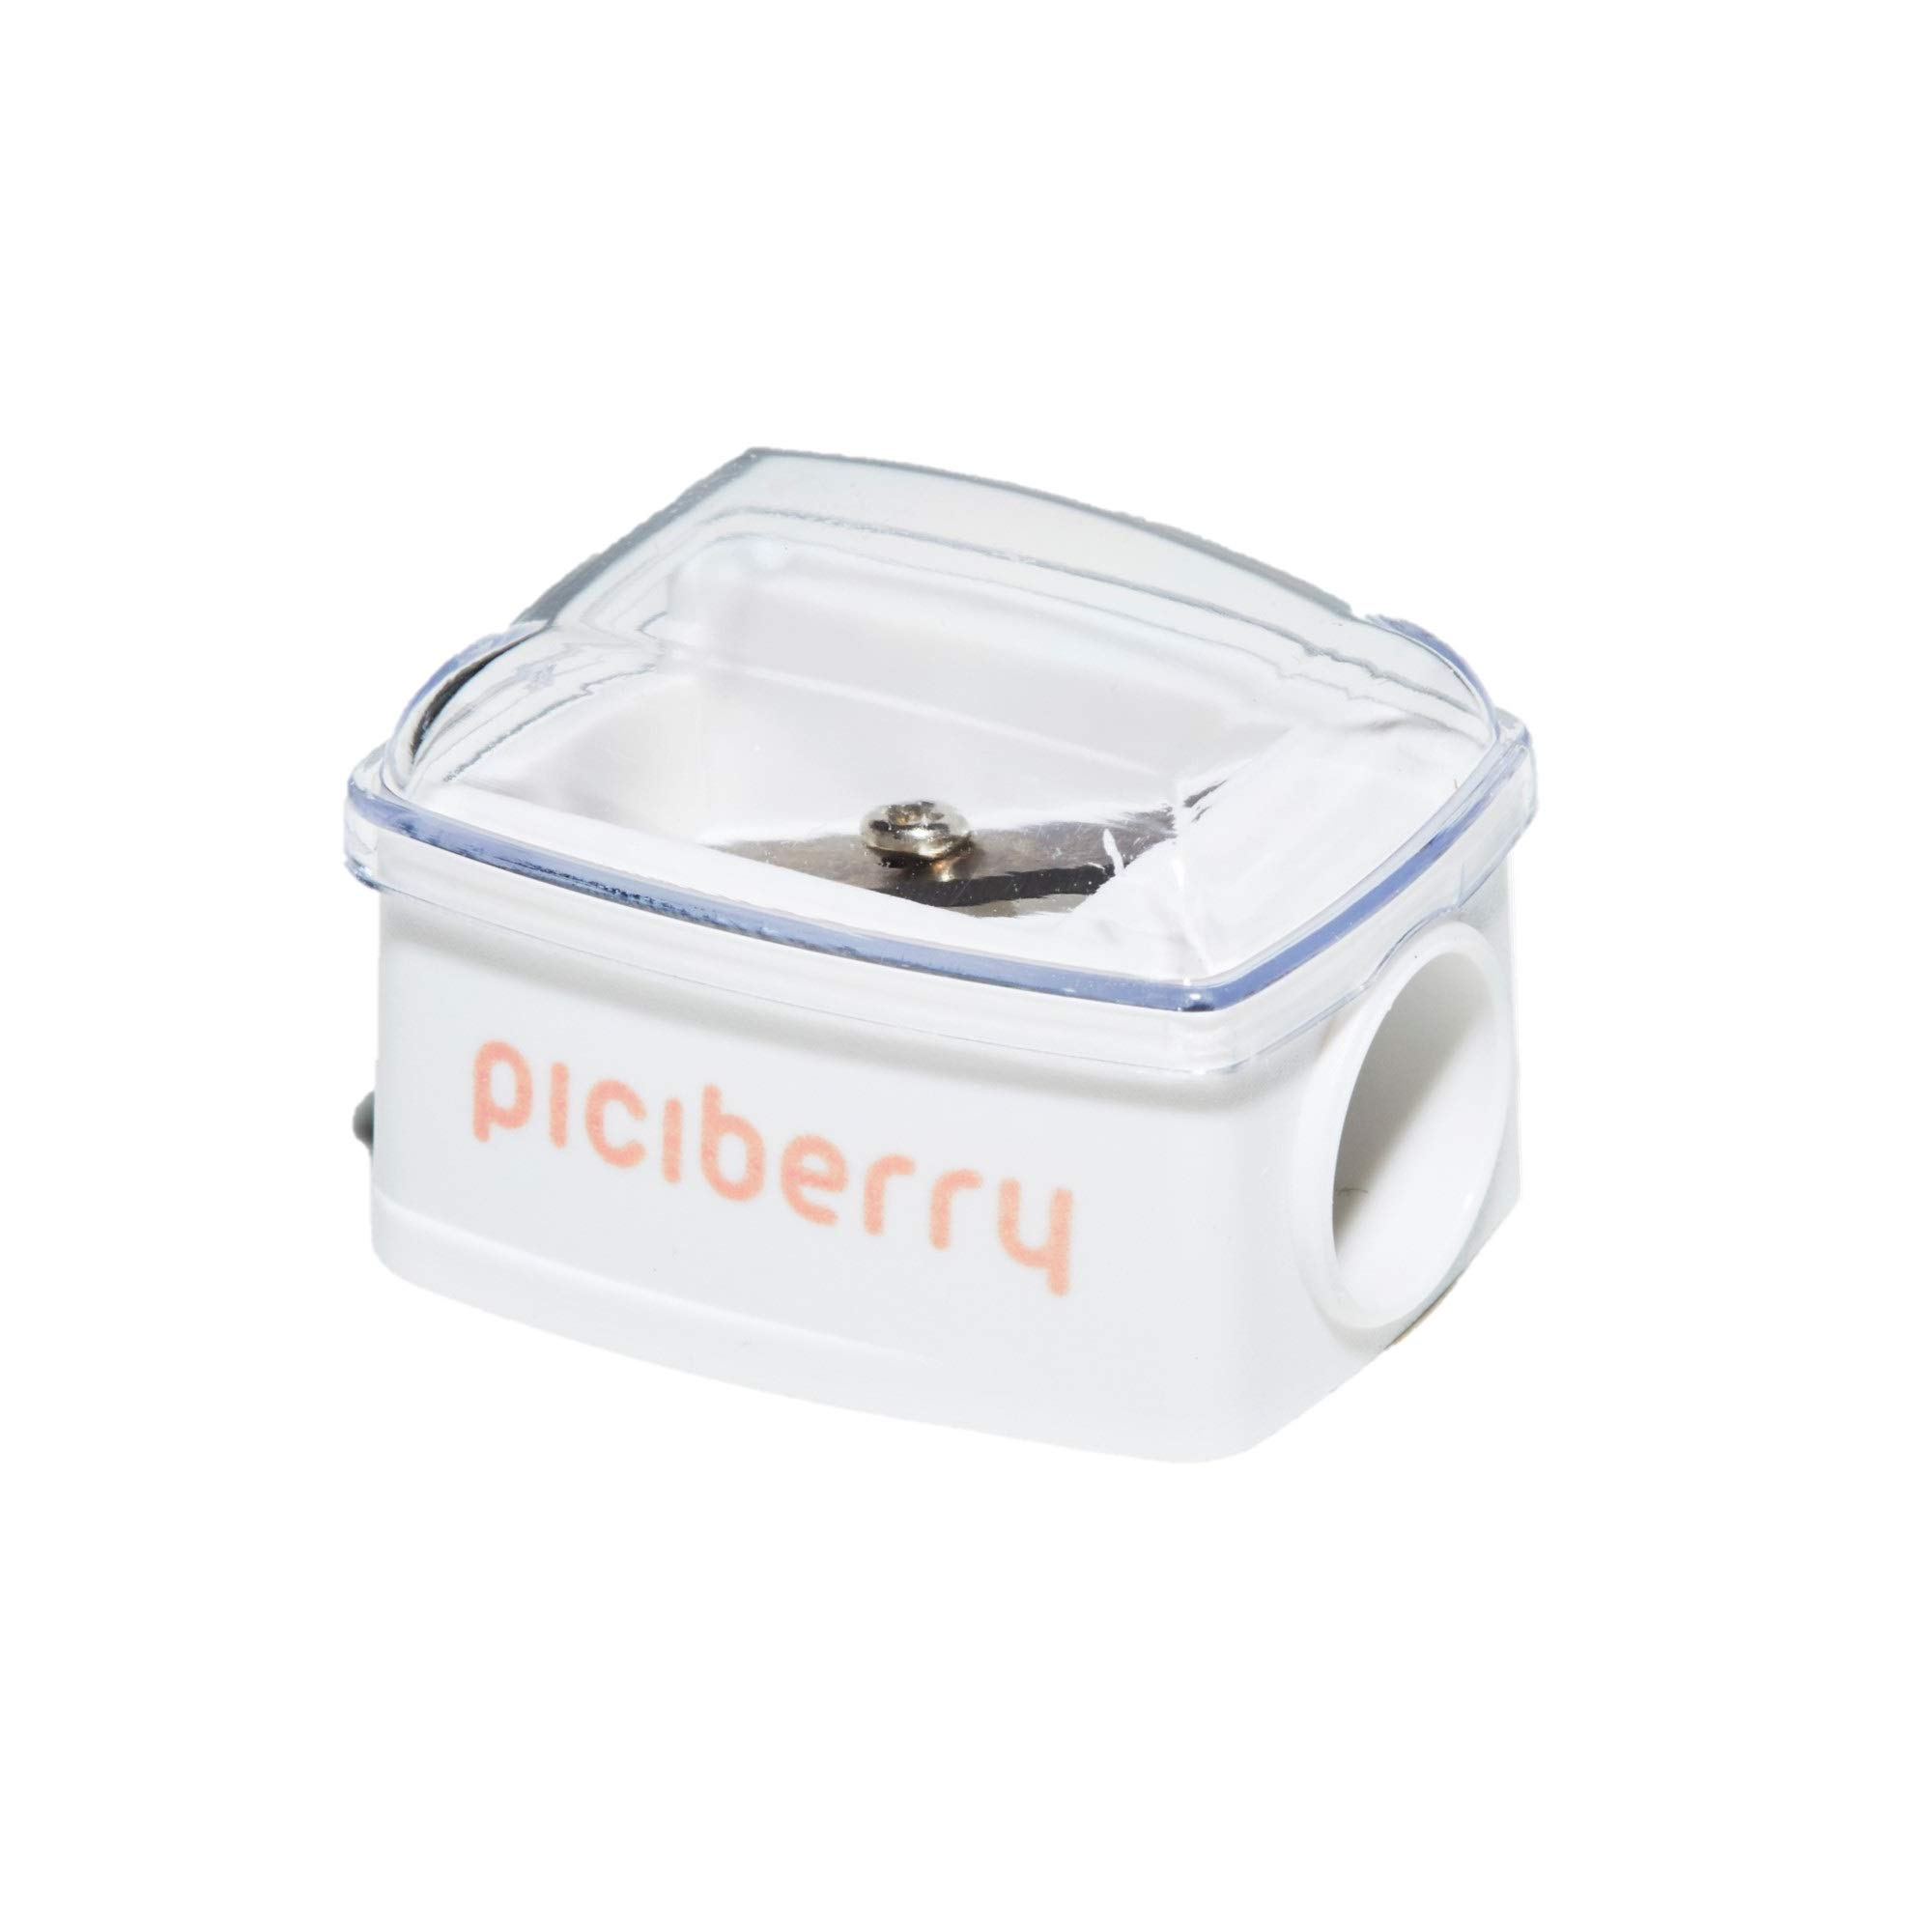 Piciberry Berryshadow Sharpener, compatible with other thick makeup pencils